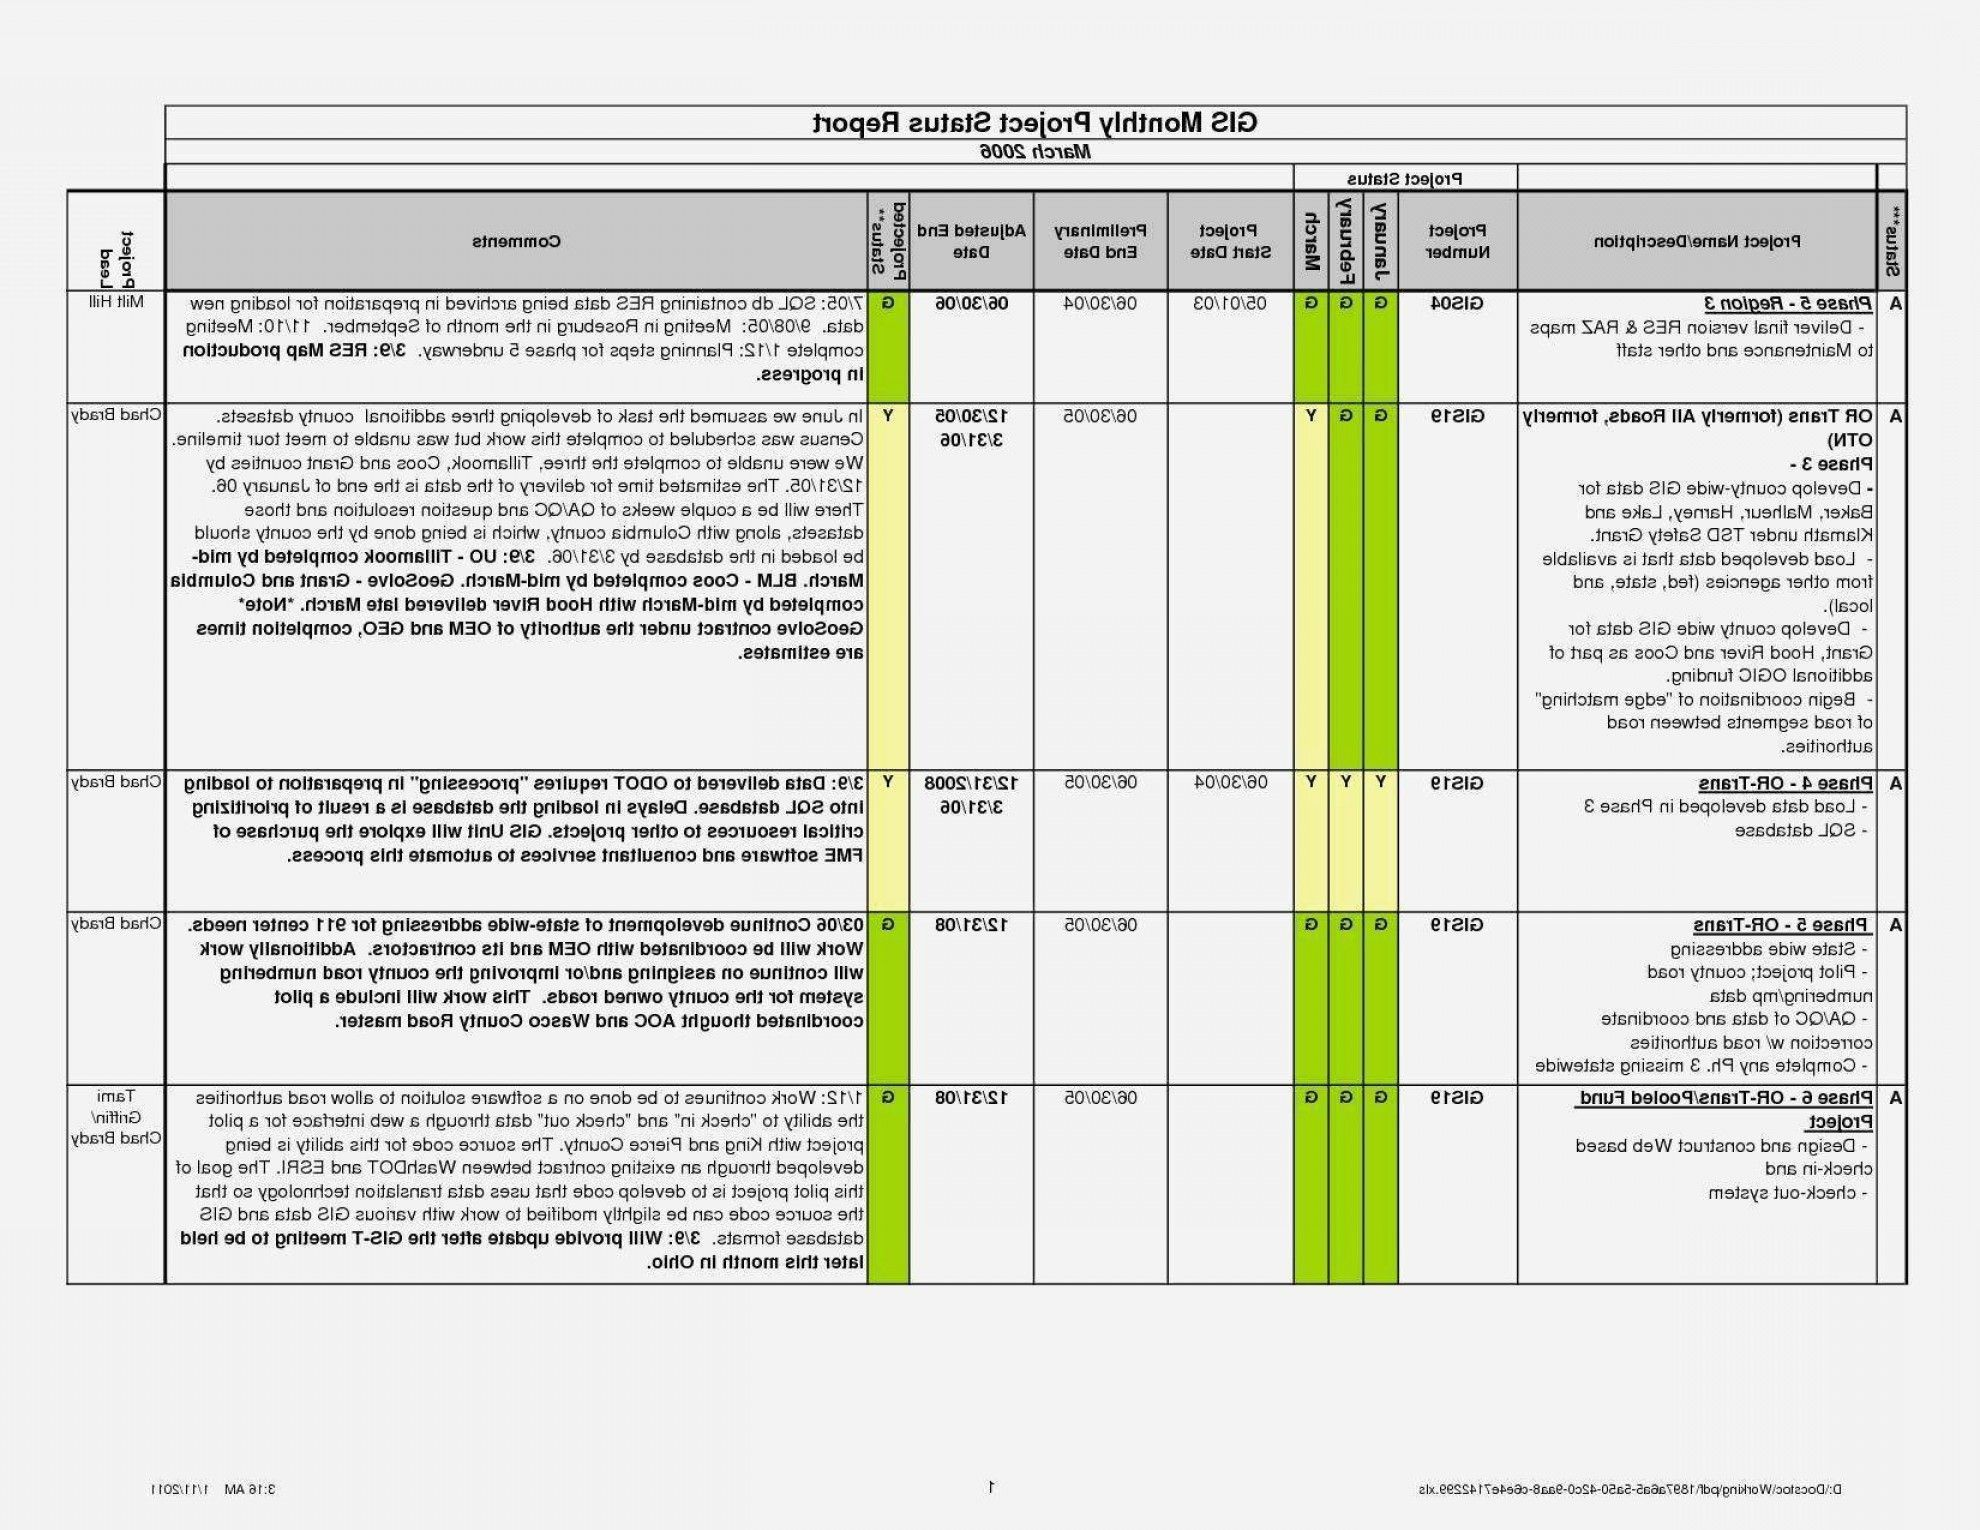 002 Rare Project Management Report Template Excel Image  Weekly Statu ProgresFull